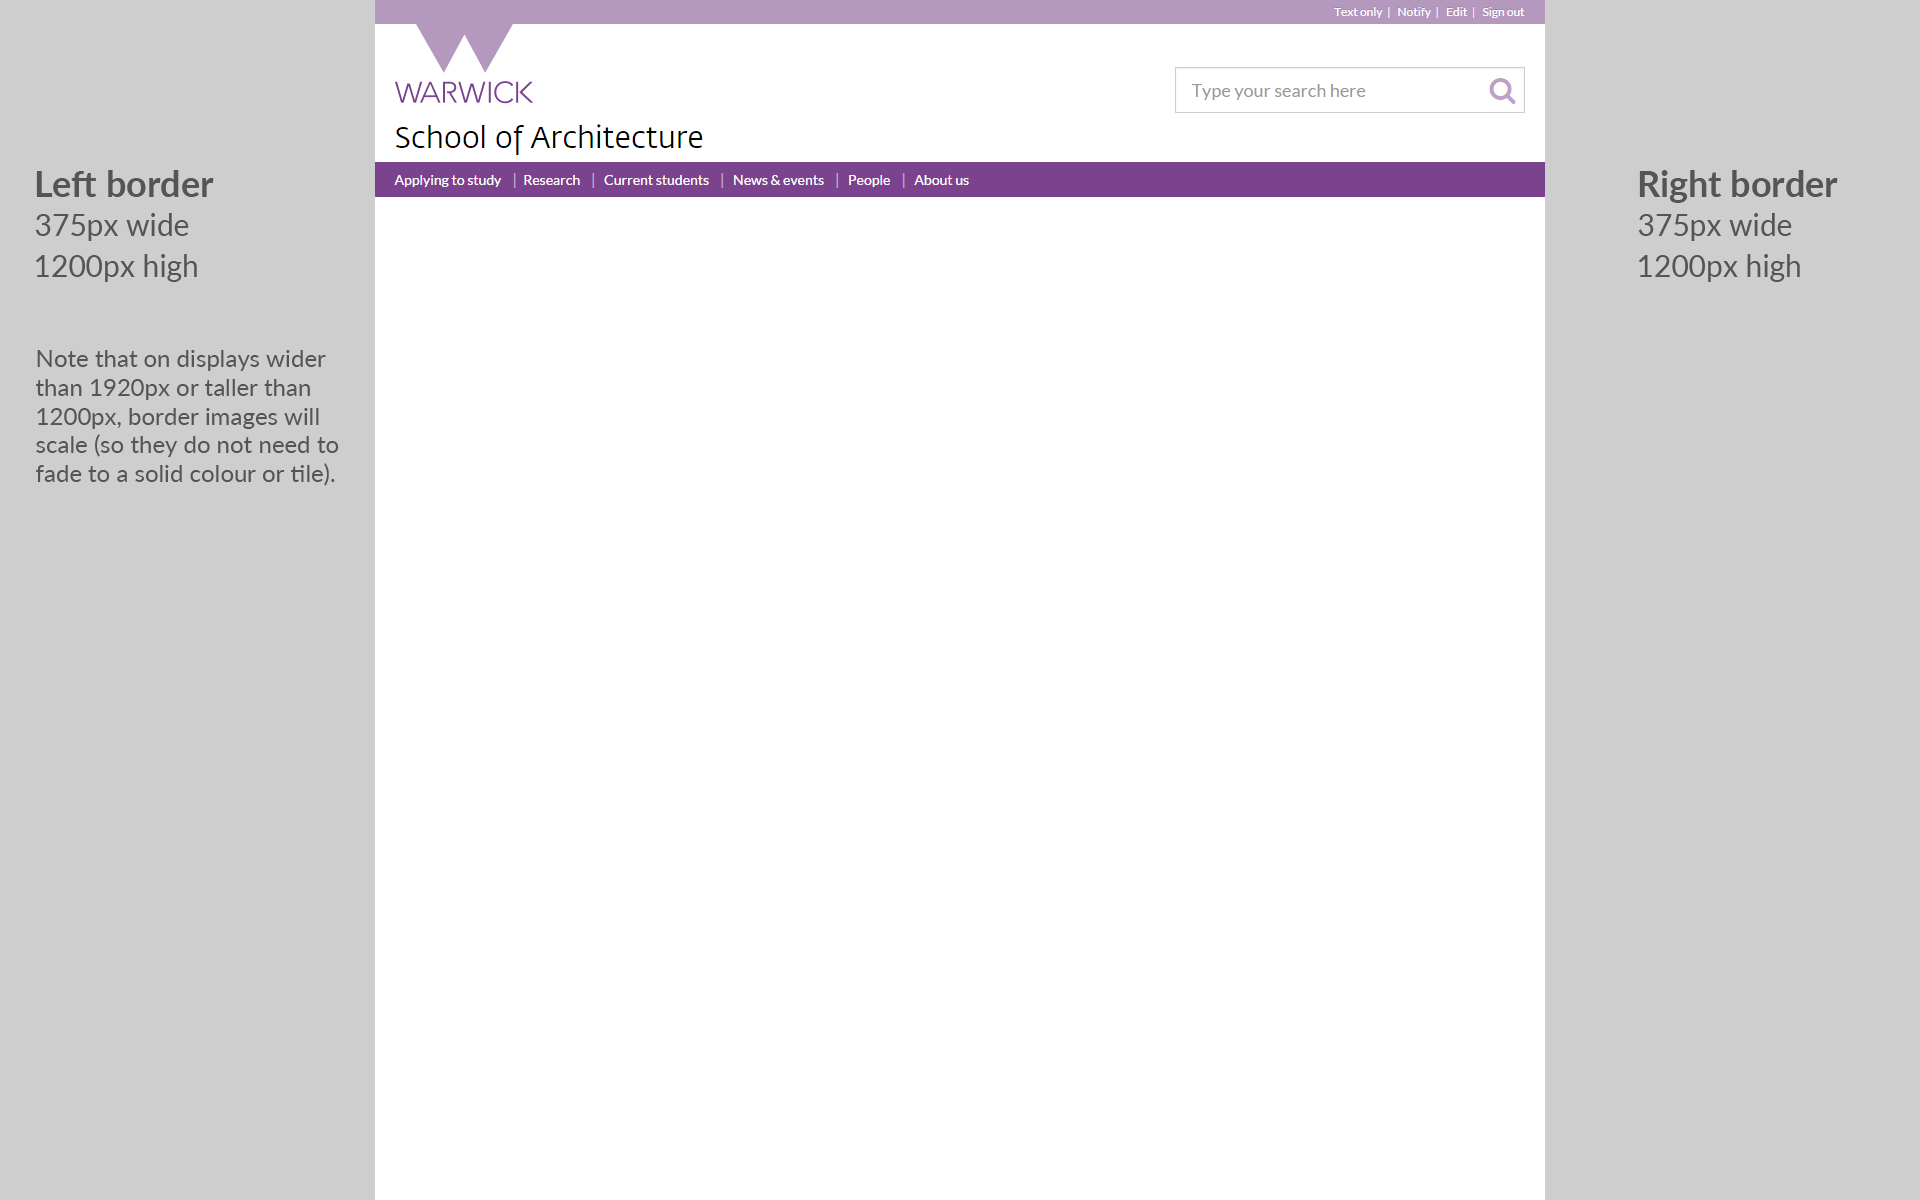 Screenshot of page border position and image sizes